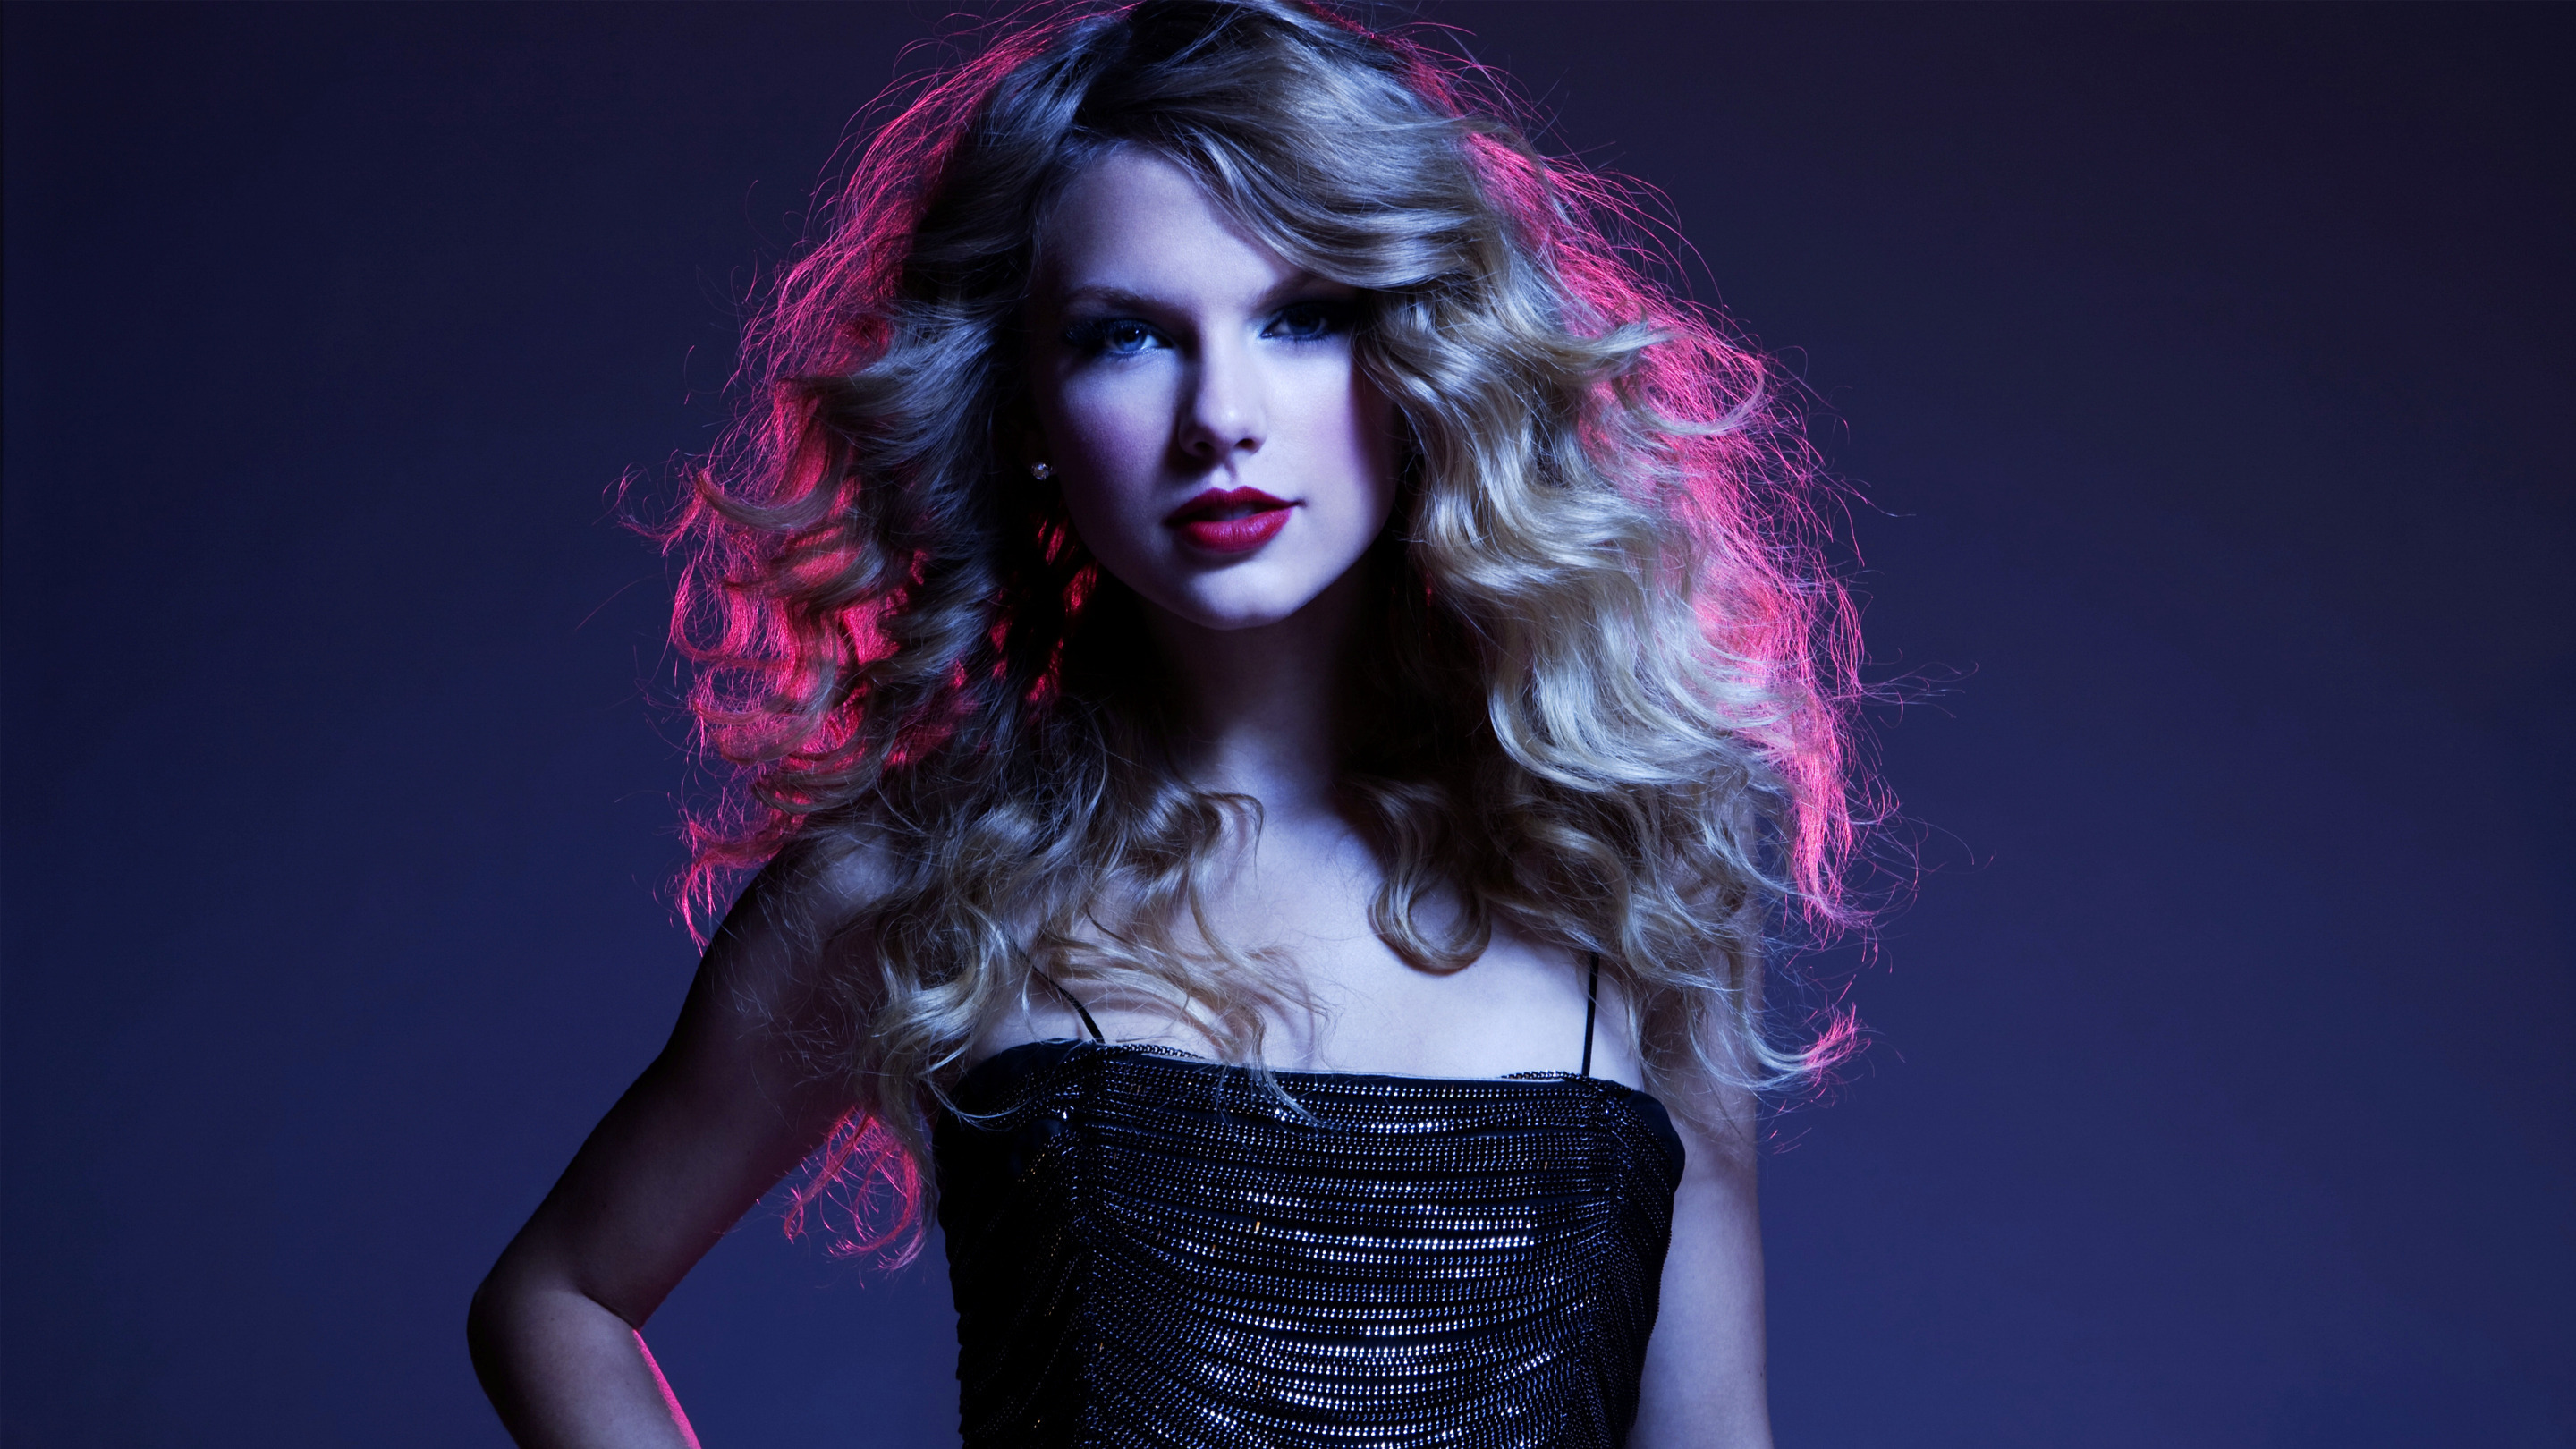 Taylor Swift Wallpapers Pictures Images 2880x1620